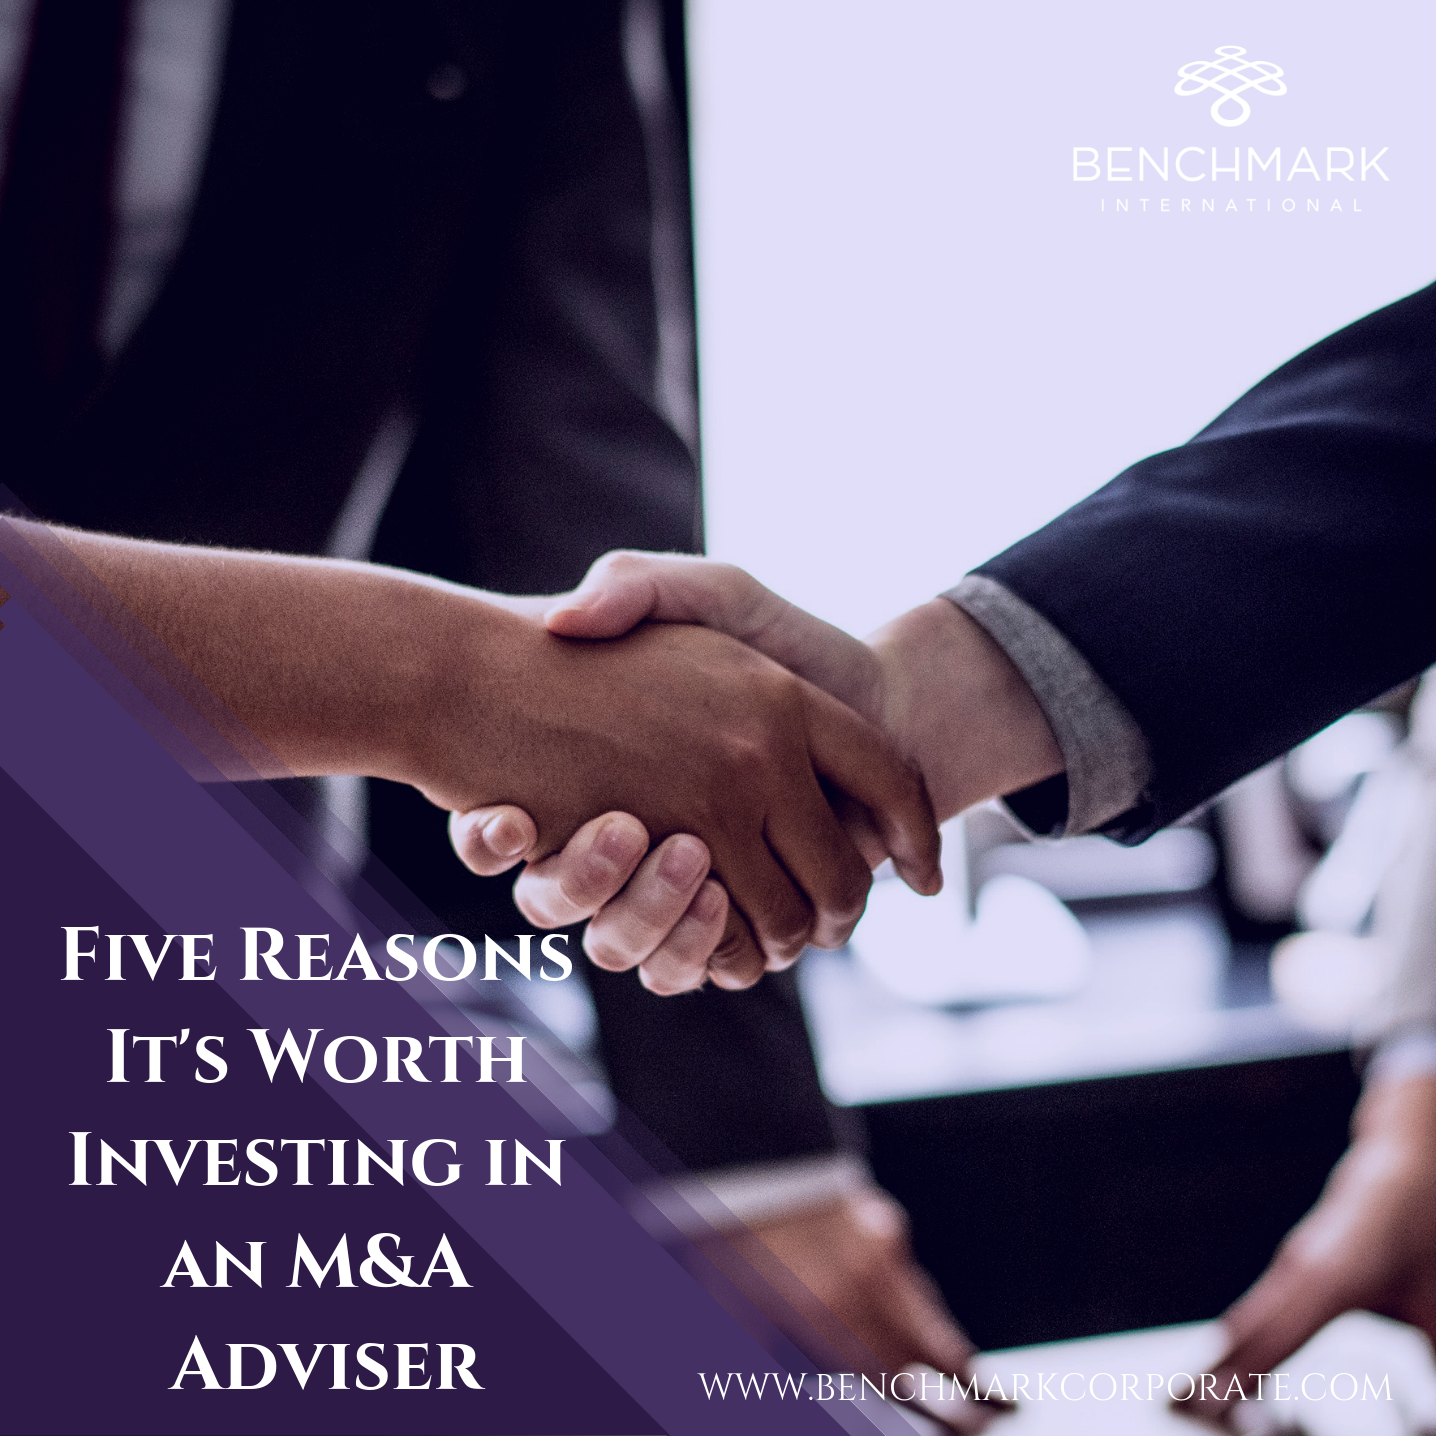 Reasons It's Worth Investing in an M&A Adviser